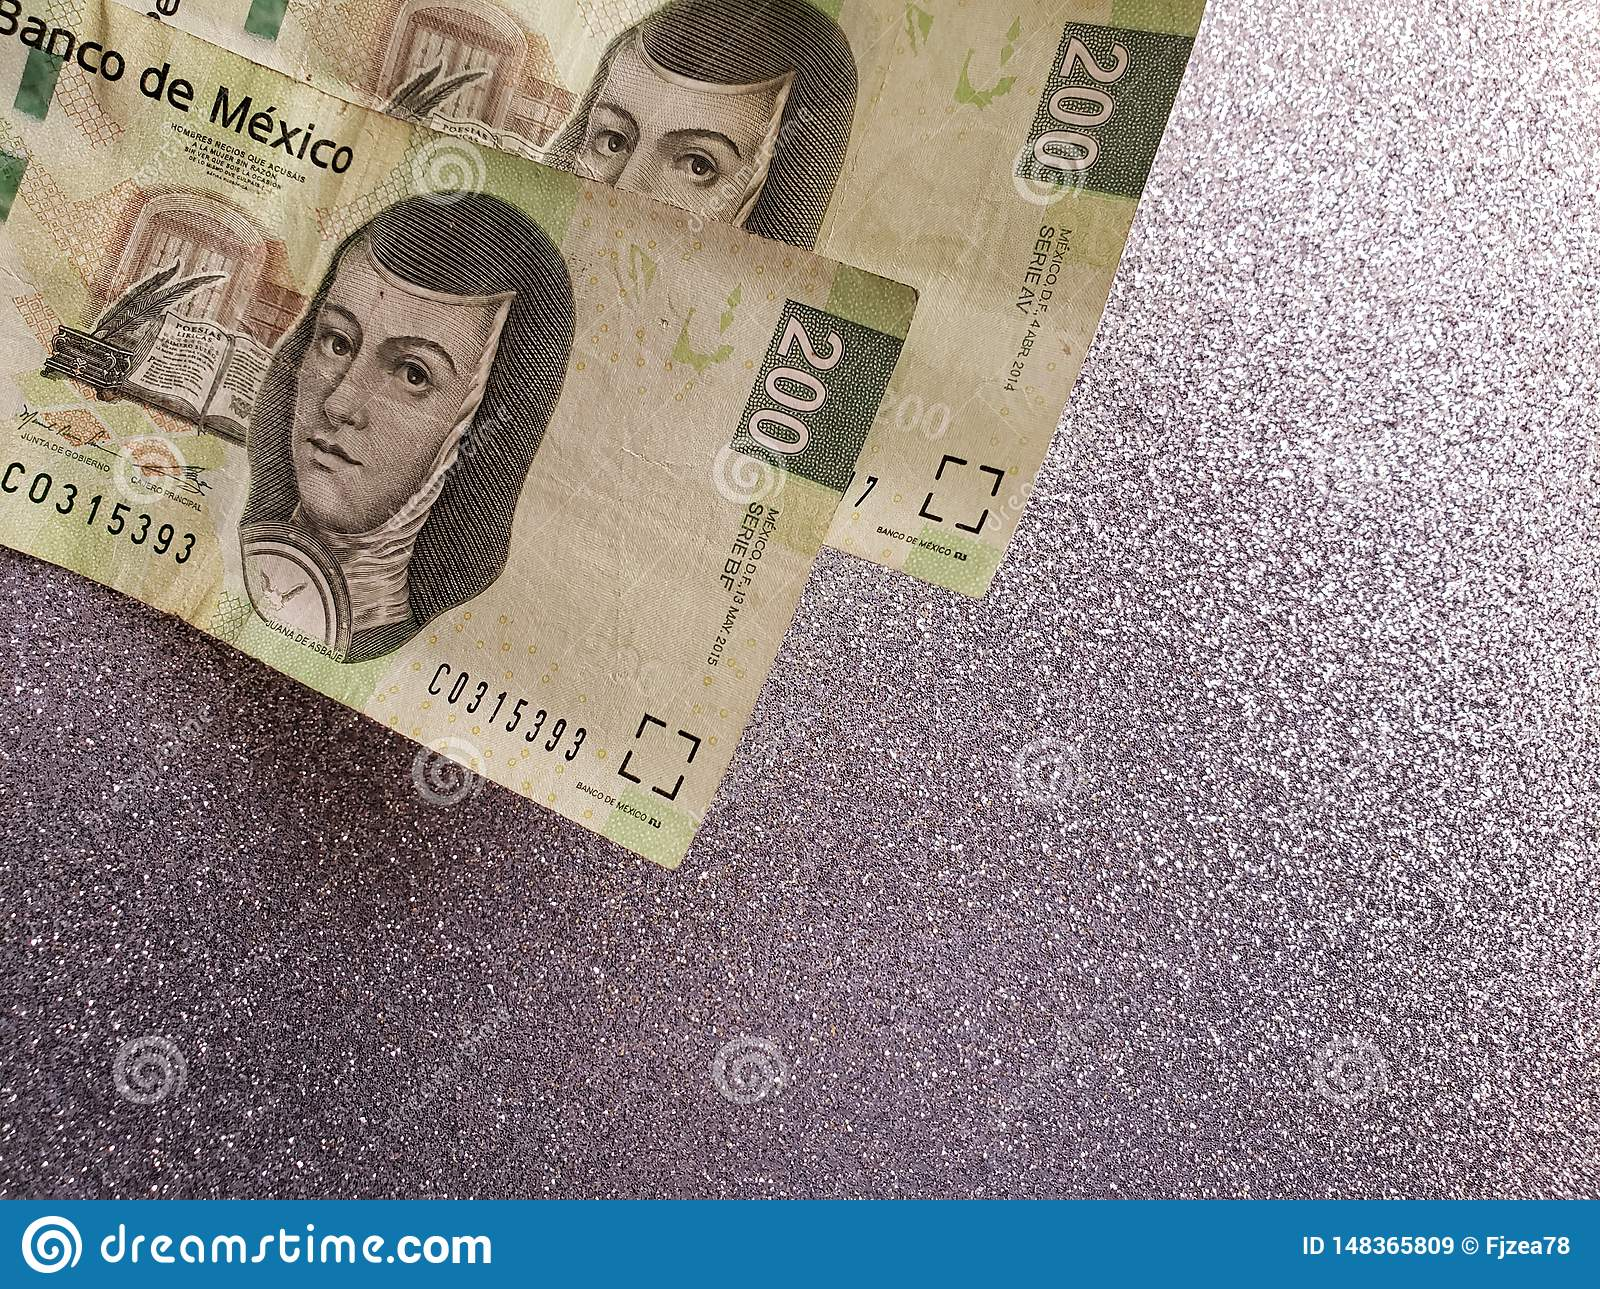 Mexican banknotes and background in metallic silver color